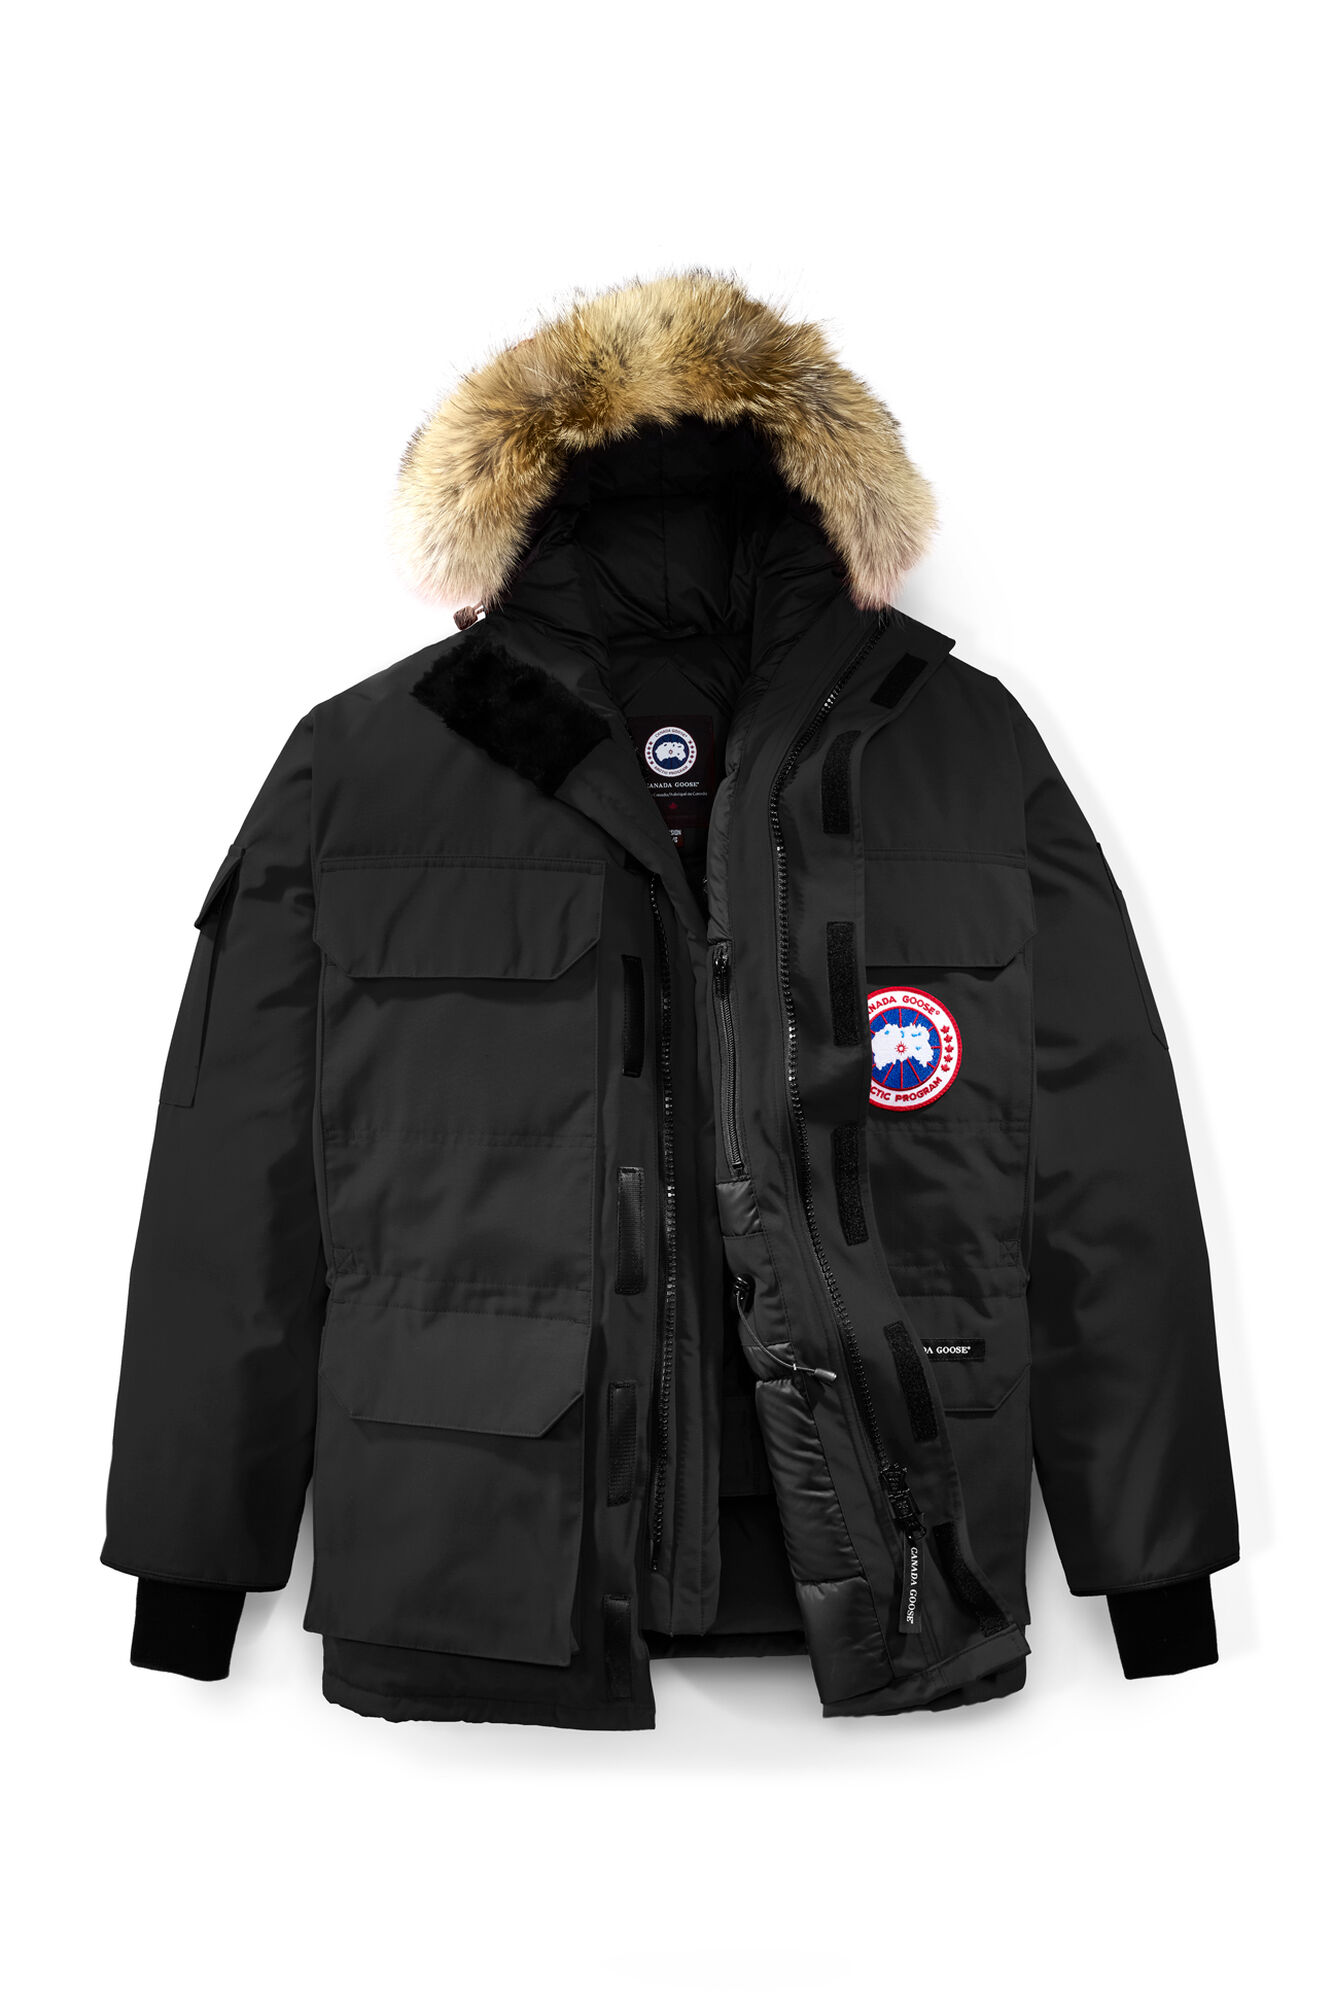 Canada Goose kensington parka online price - Men's Parkas | Expedition | Mountaineer | Canada Goose?